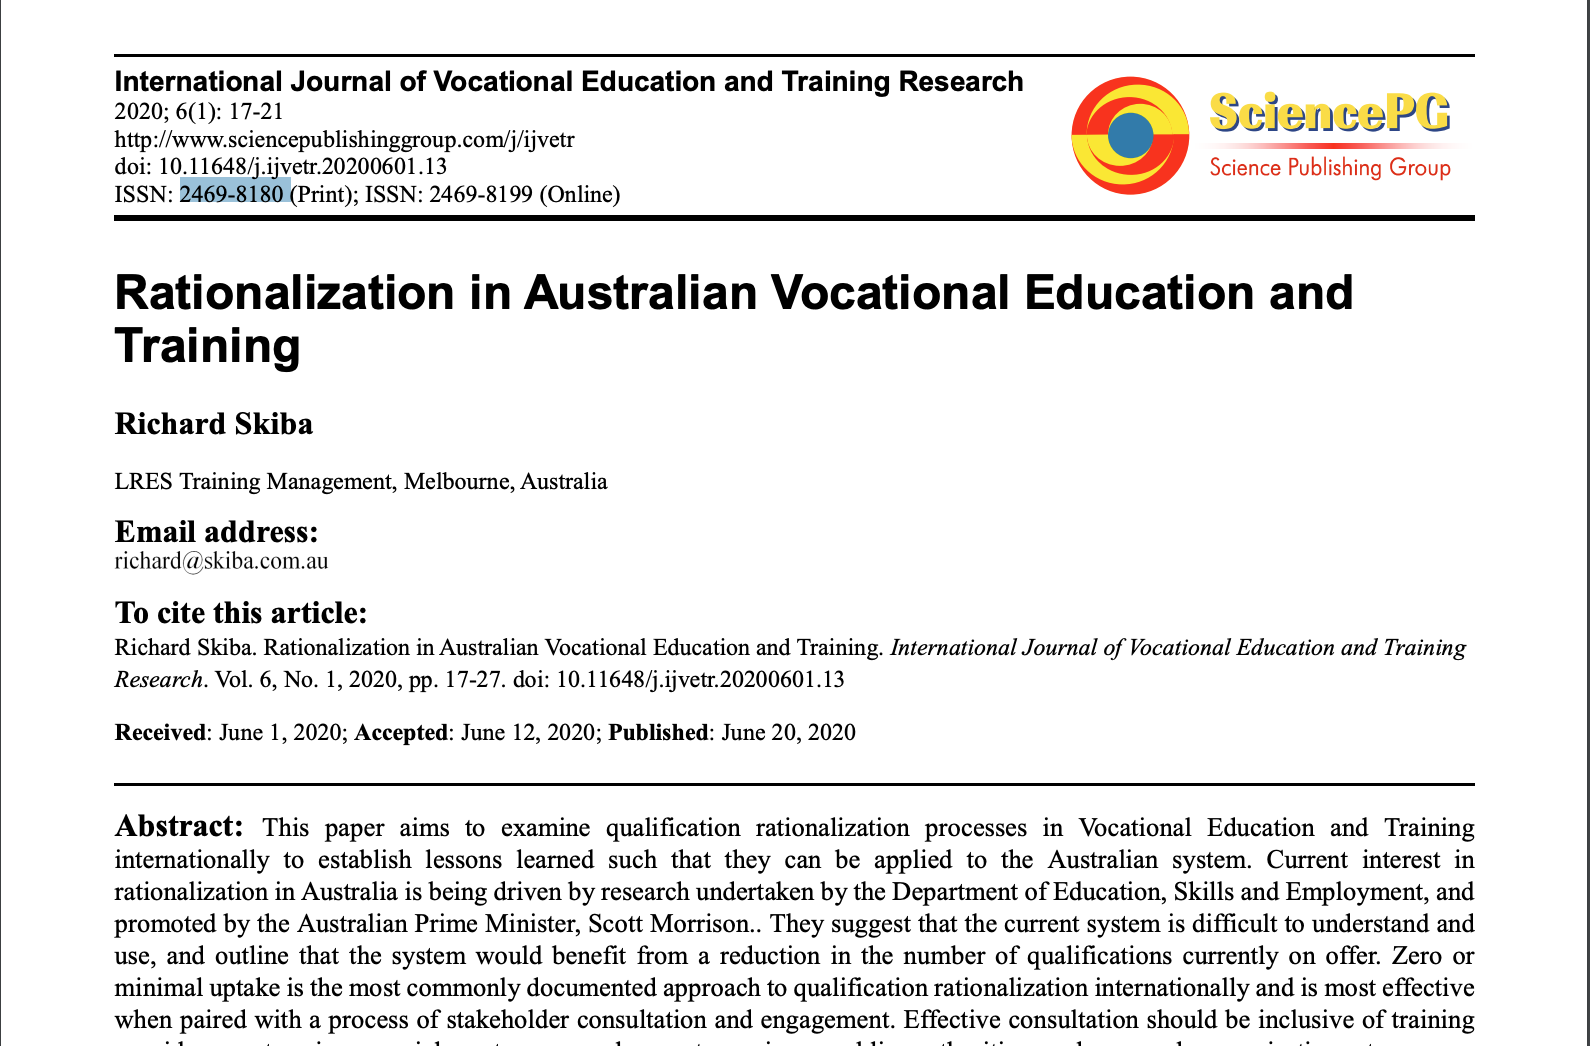 Rationalization in Australian Vocational Education and Training